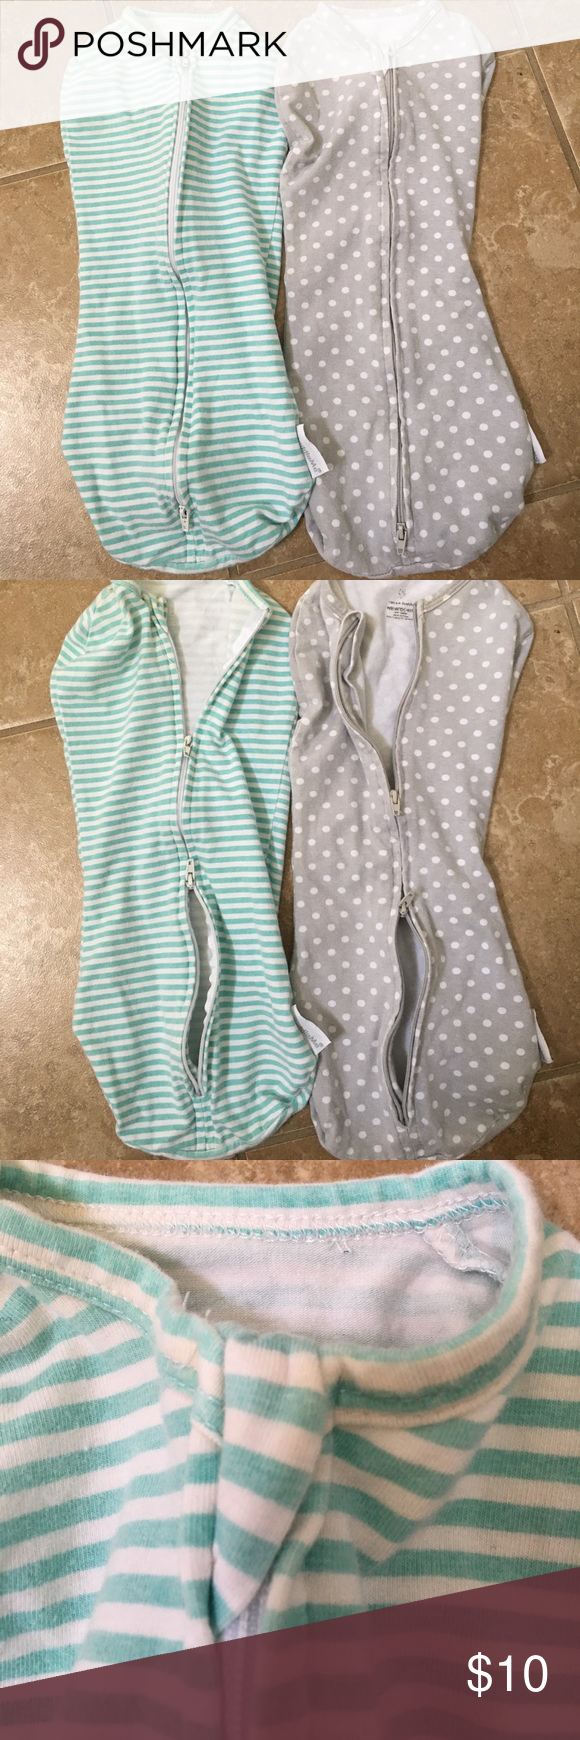 2 swaddle me swaddles Selling TWO. These things are the best! They are targets knock off of the woombie. Our little guy loved these! They are a breeze to get on and change diapers since they have  2 zippers. You will love having these swaddle me Pajamas Sleep Sacks